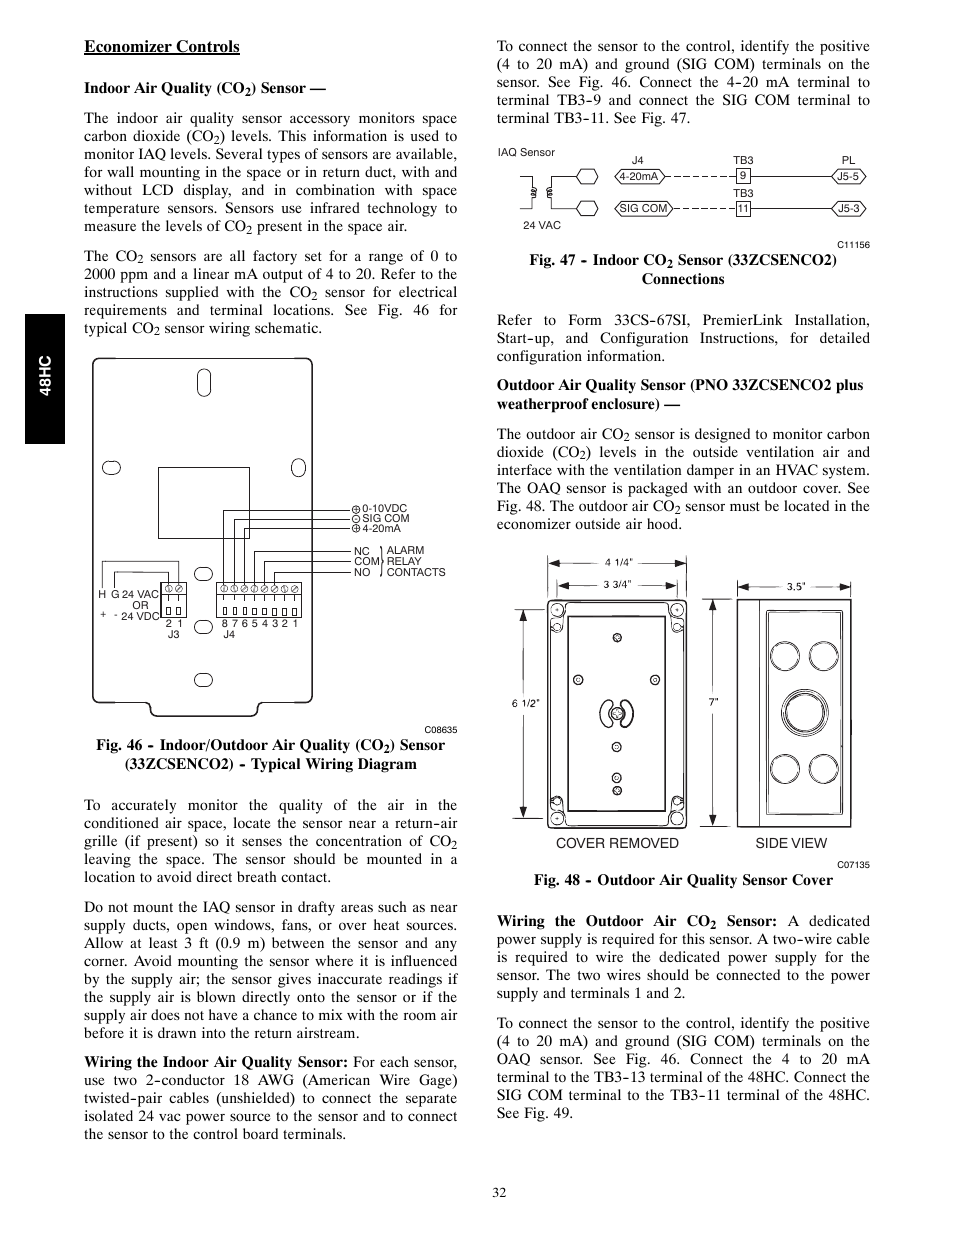 Carrier Single Package Rooftop 48hc User Manual Page 32 52 Economizer Wiring Diagram